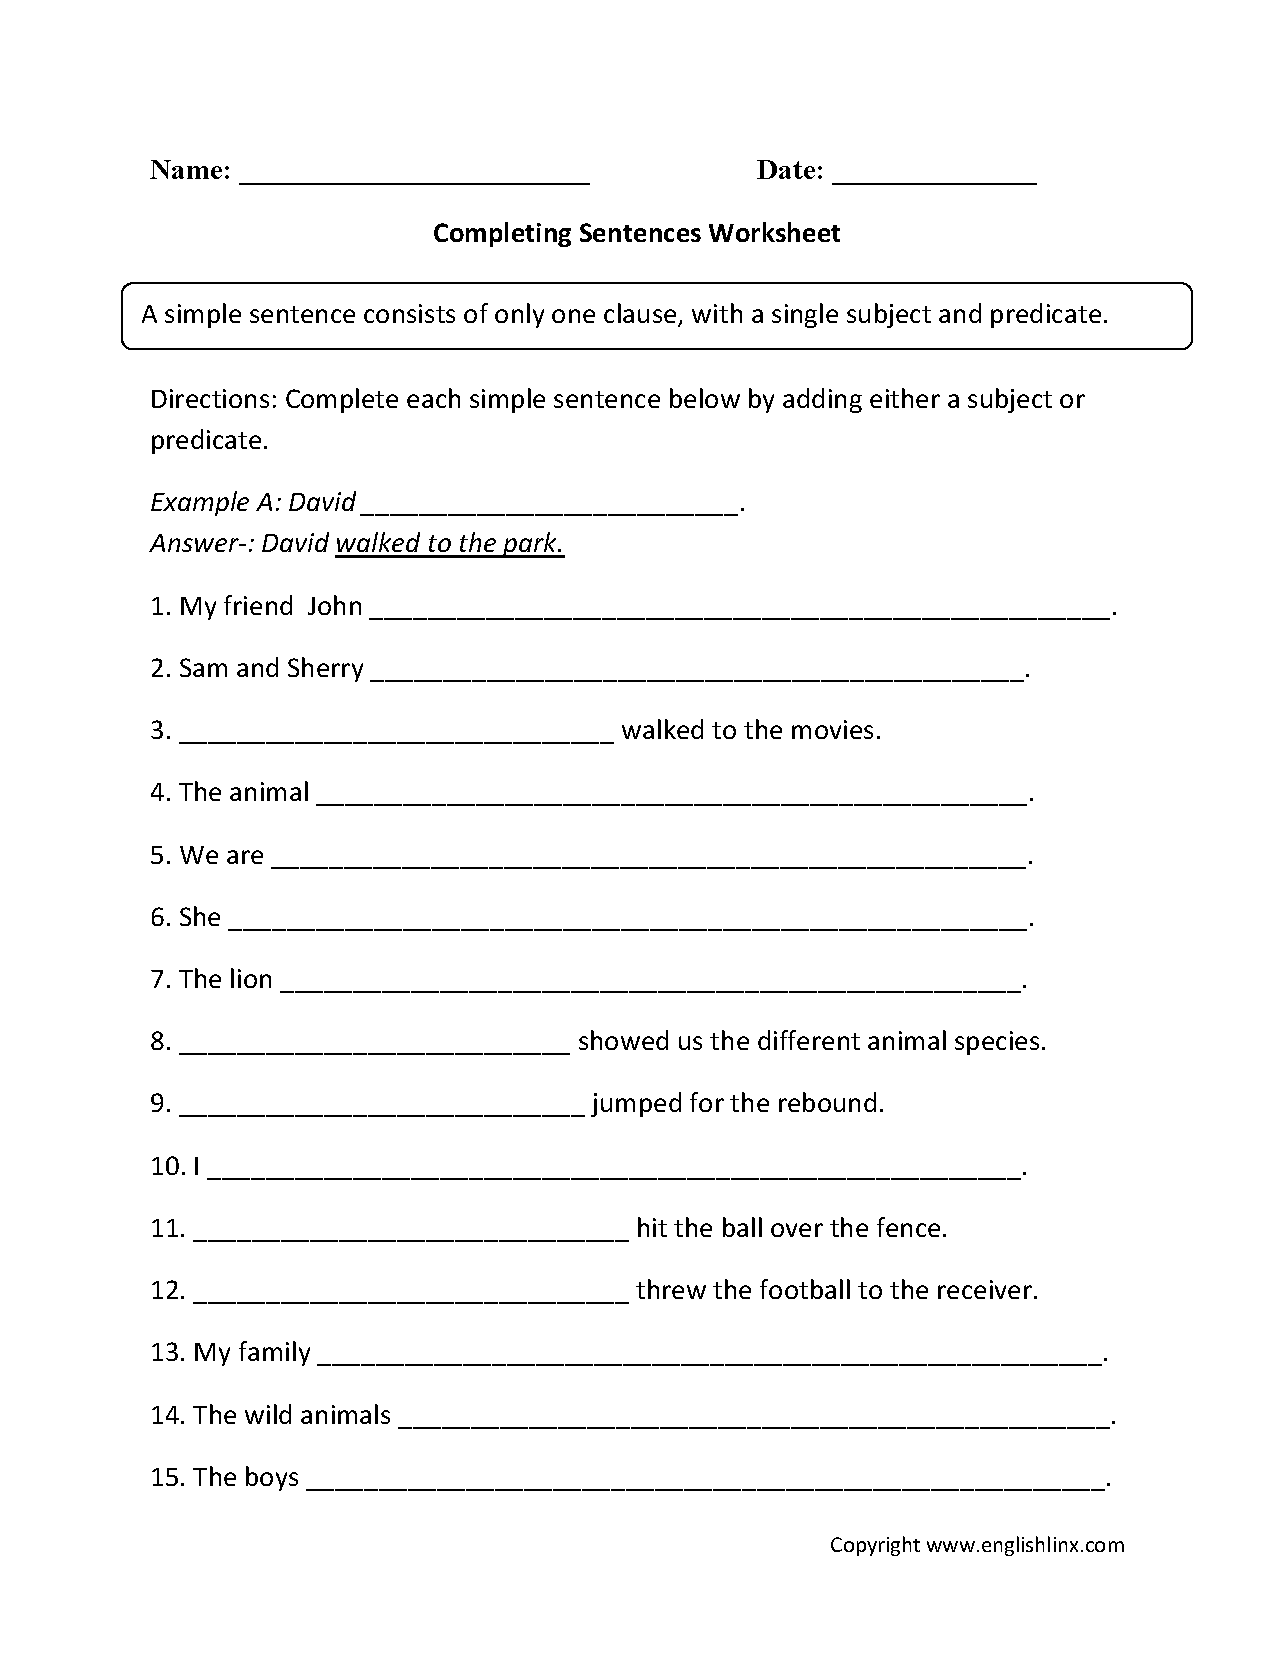 hight resolution of Adjective Worksheet 4th Grade   Printable Worksheets and Activities for  Teachers